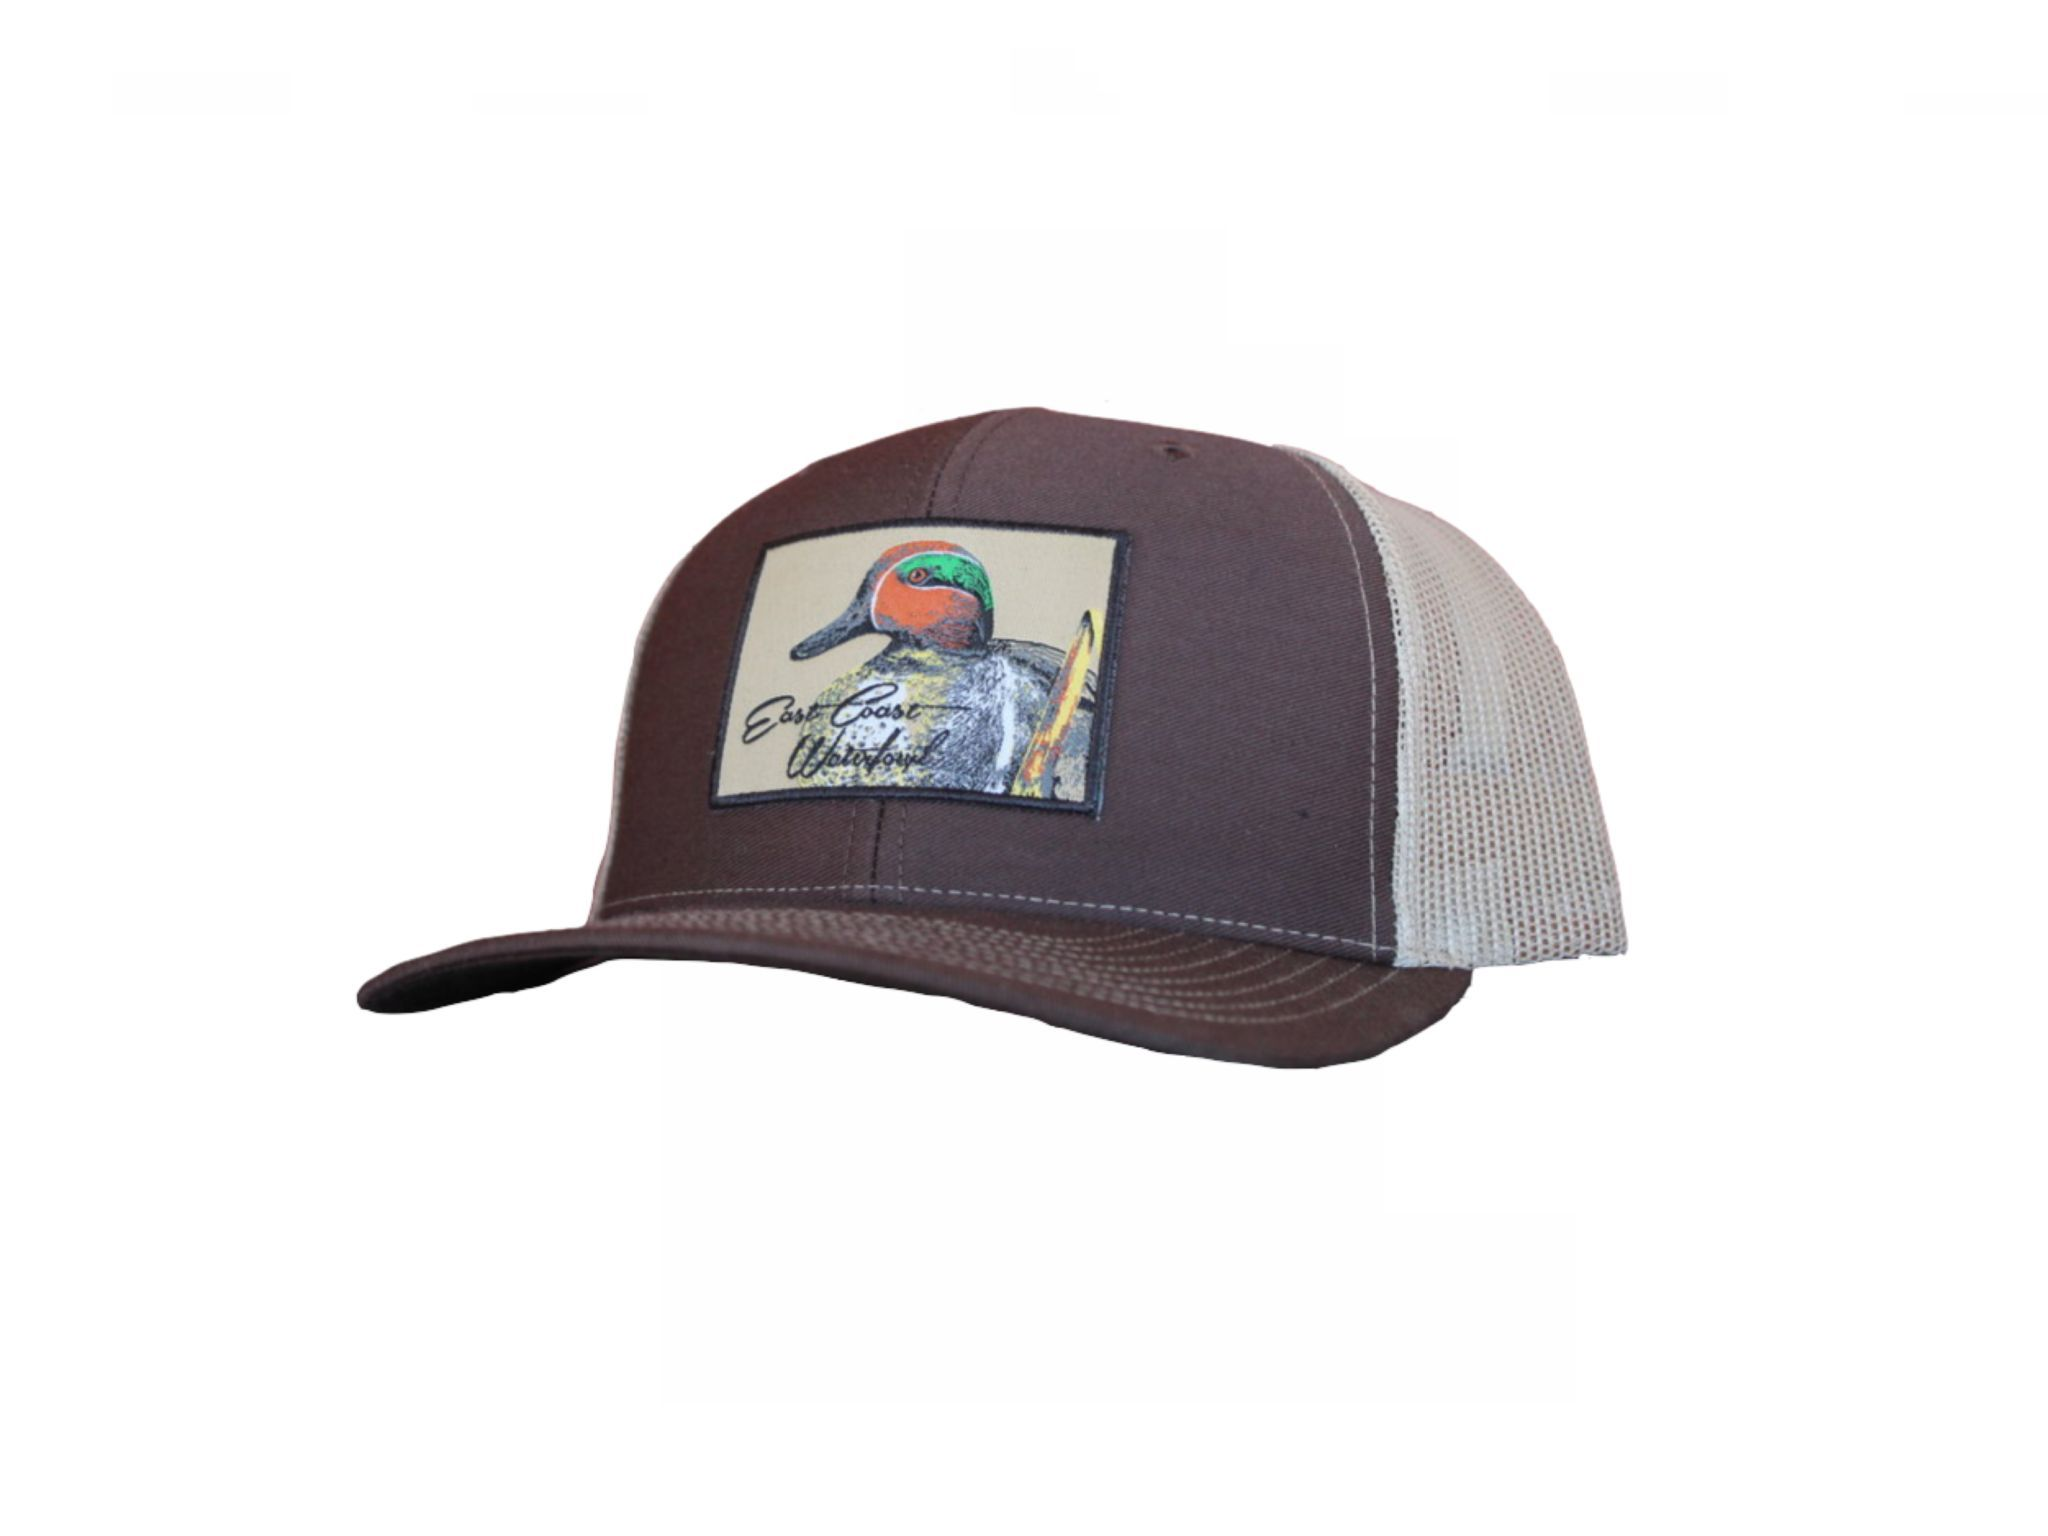 cc3444c7253 Green-Winged Teal Patch Snap Back Trucker Hat